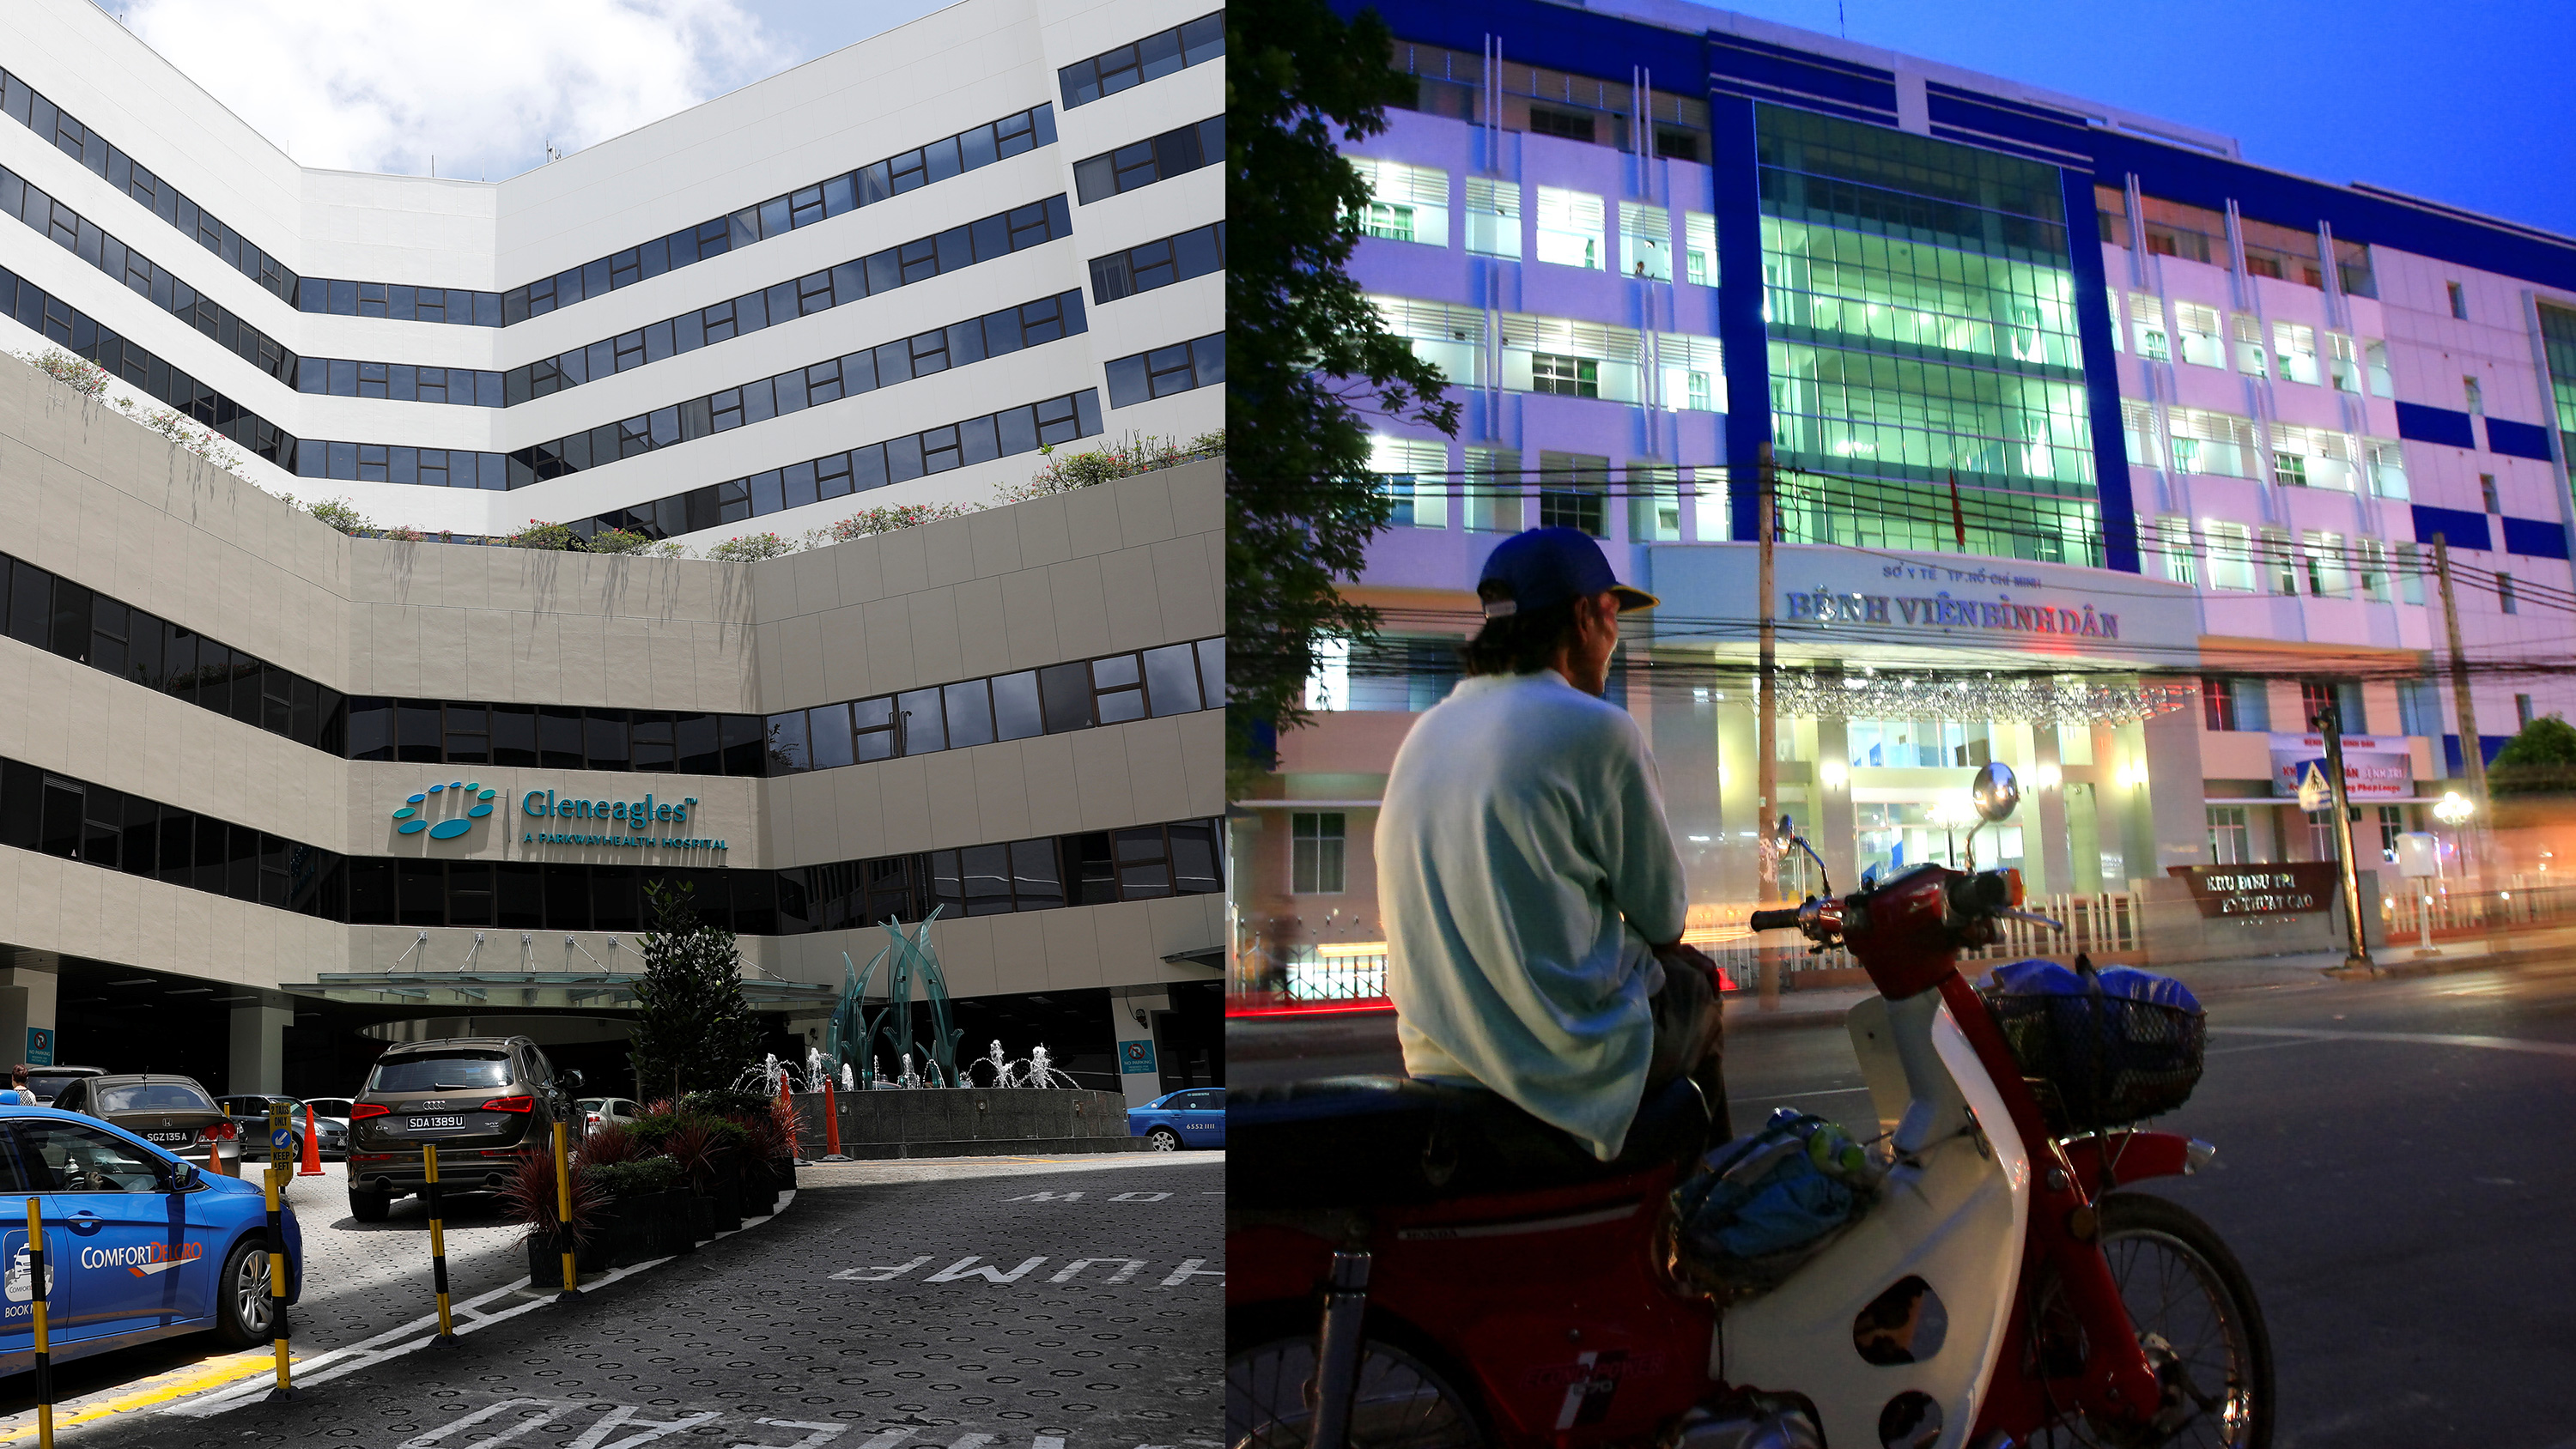 Photo shows two hospitals side by side, one pictured during the day and the other at night.